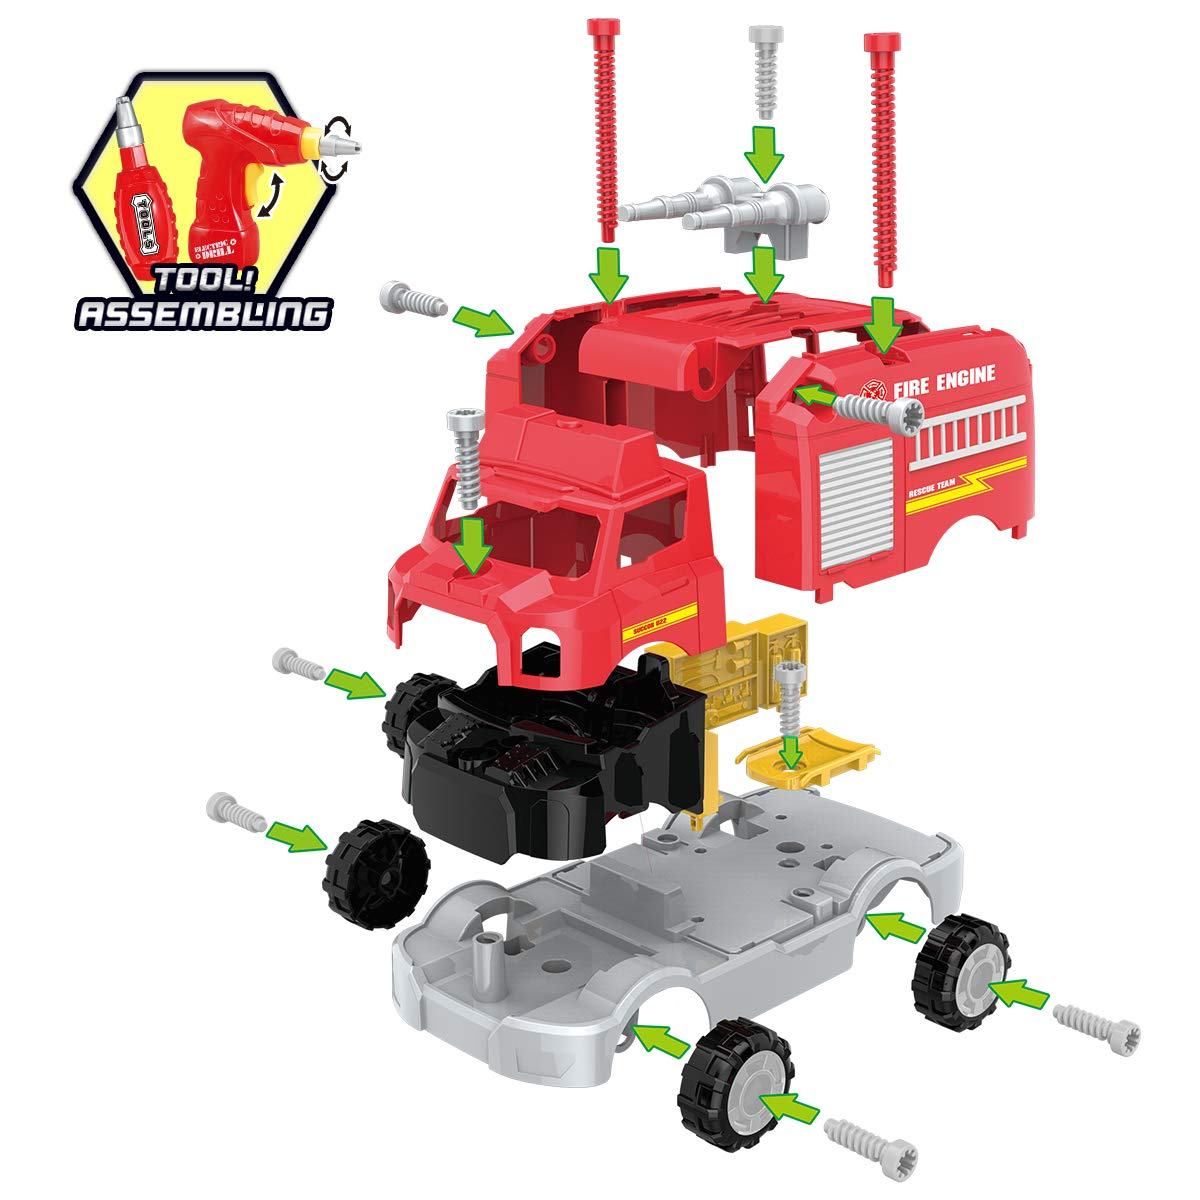 REMOKING STEM Learning Take Apart Toy for Boys & Girls, Build Your Own Car Toy Fire Truck Educational Playset with Tools and Power Drill, DIY Assembly Car with Realistic Sounds & Lights (3+ Ages) by REMOKING (Image #2)